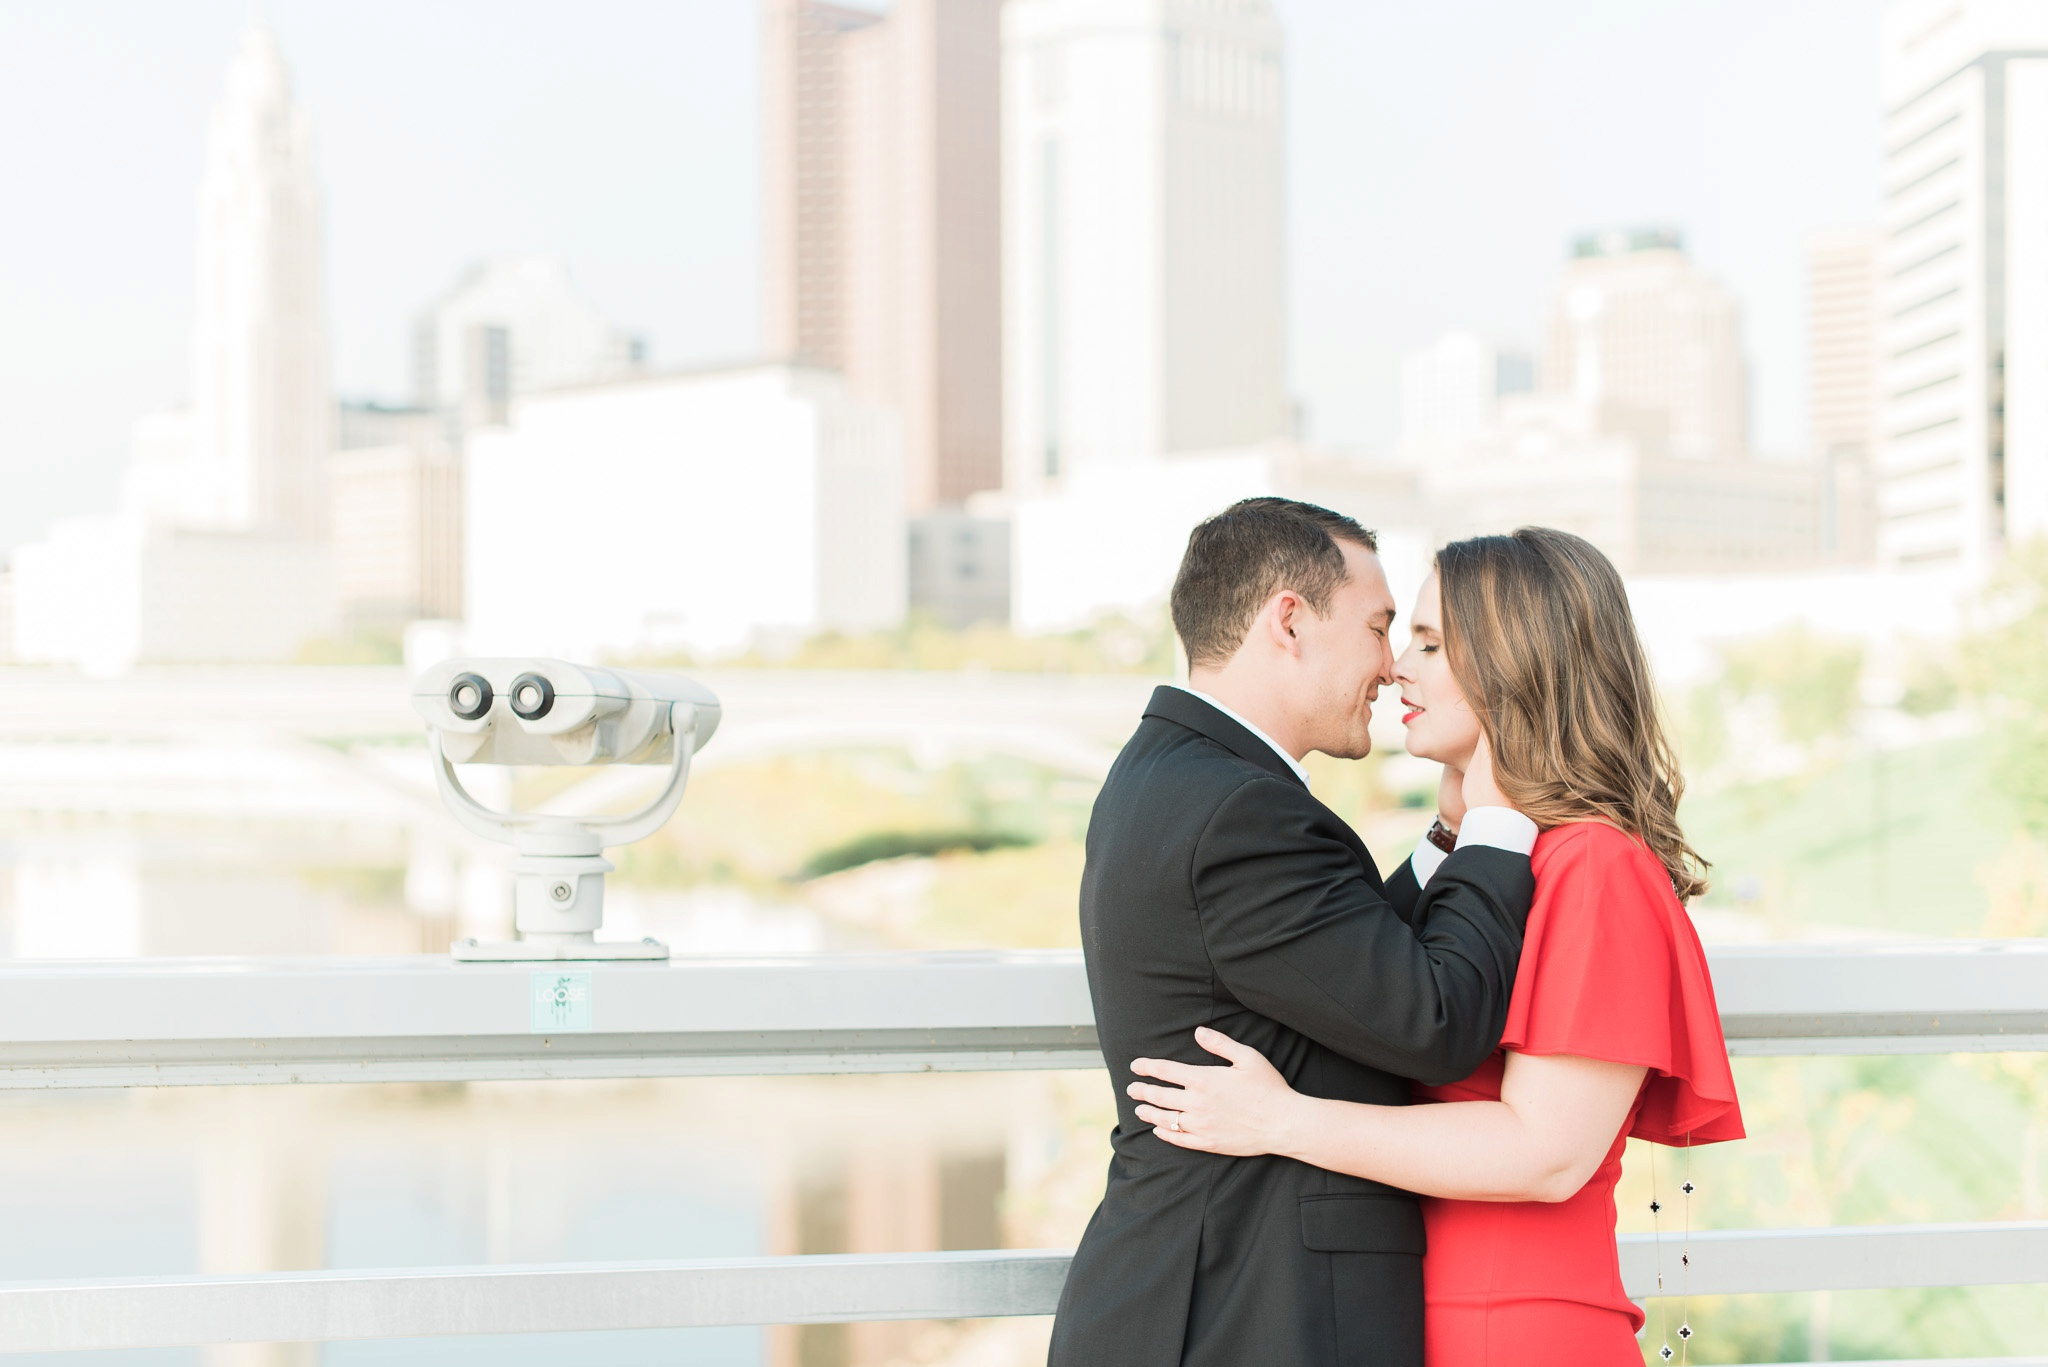 downtown-columbus-german-village-engagement-session-46.jpg